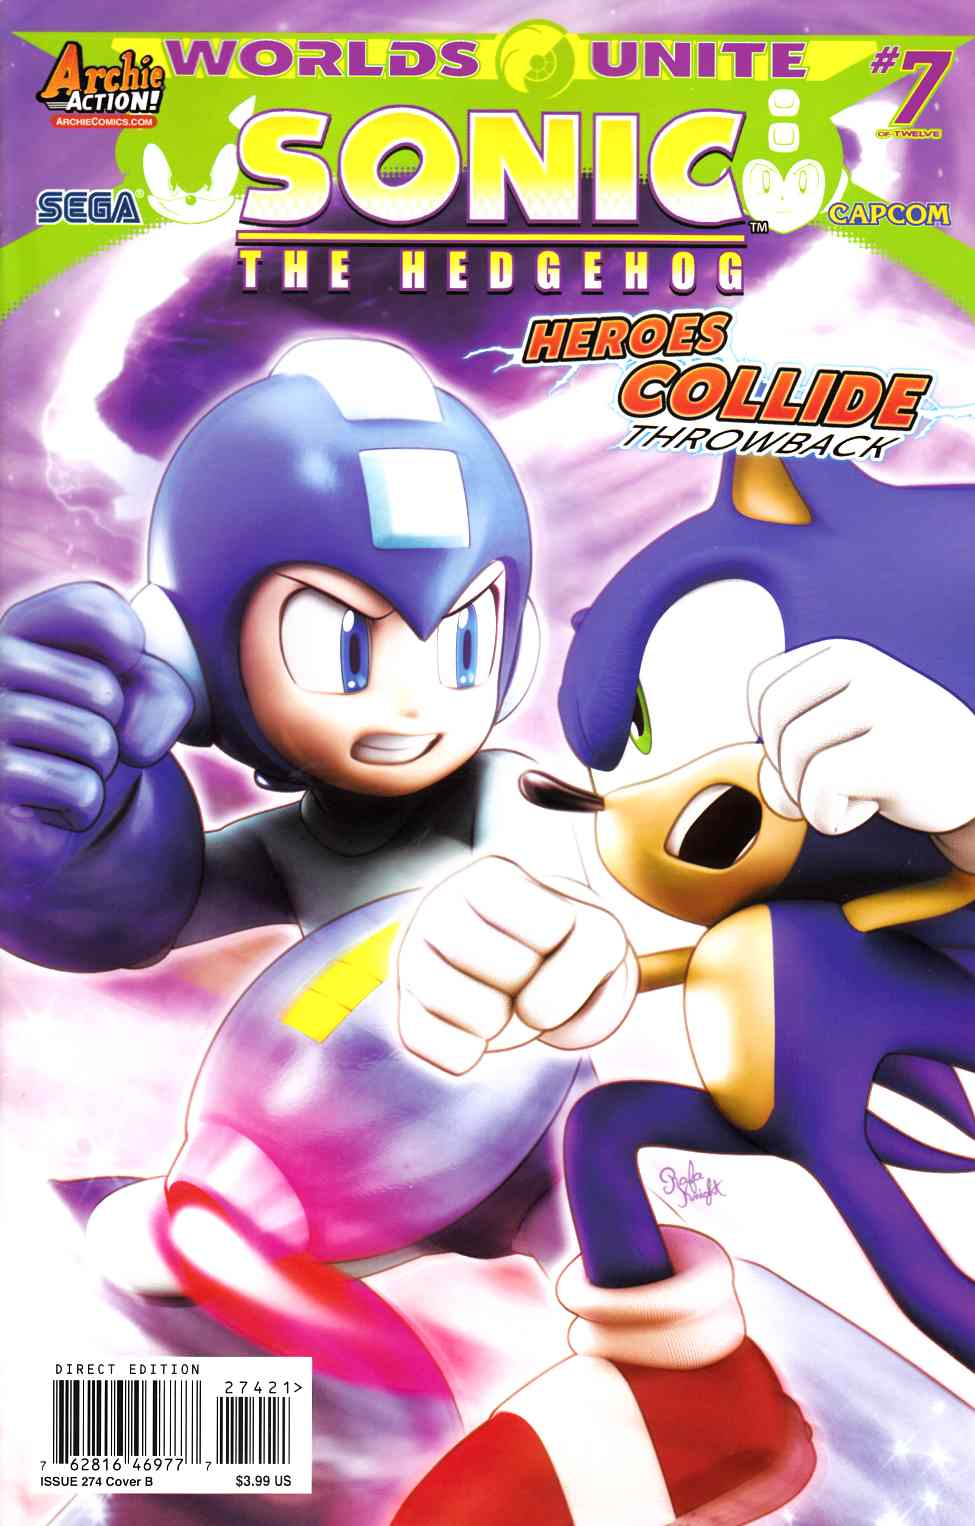 Sonic the Hedgehog #274 CG-Slugfest Variant Cover [Archie Comic]_THUMBNAIL